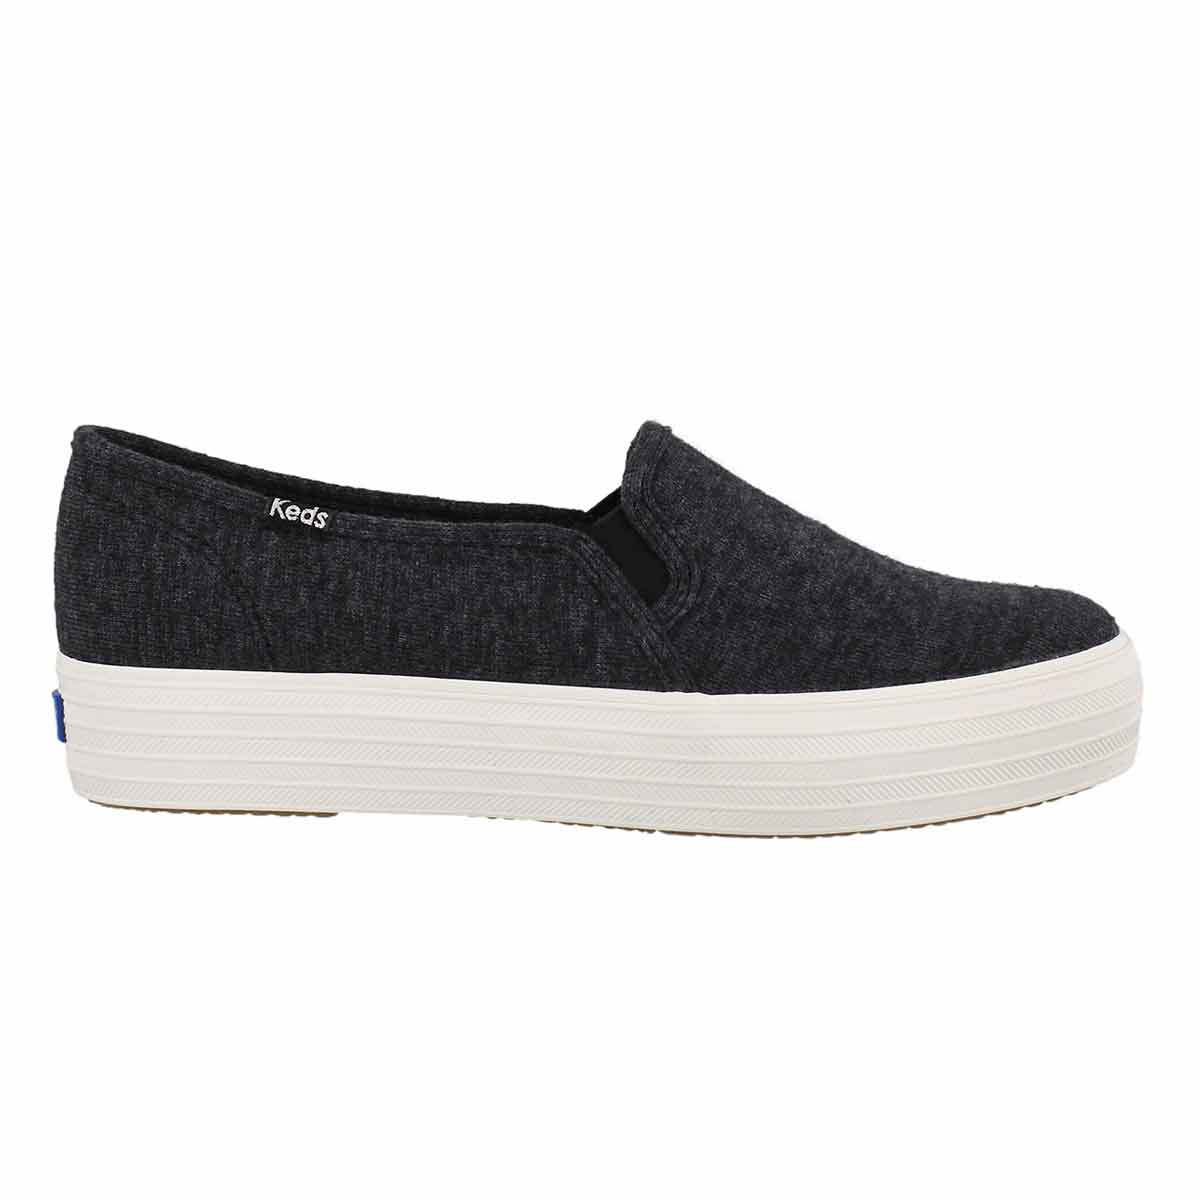 Lds TripleDeckerJersey blk slip on snkr